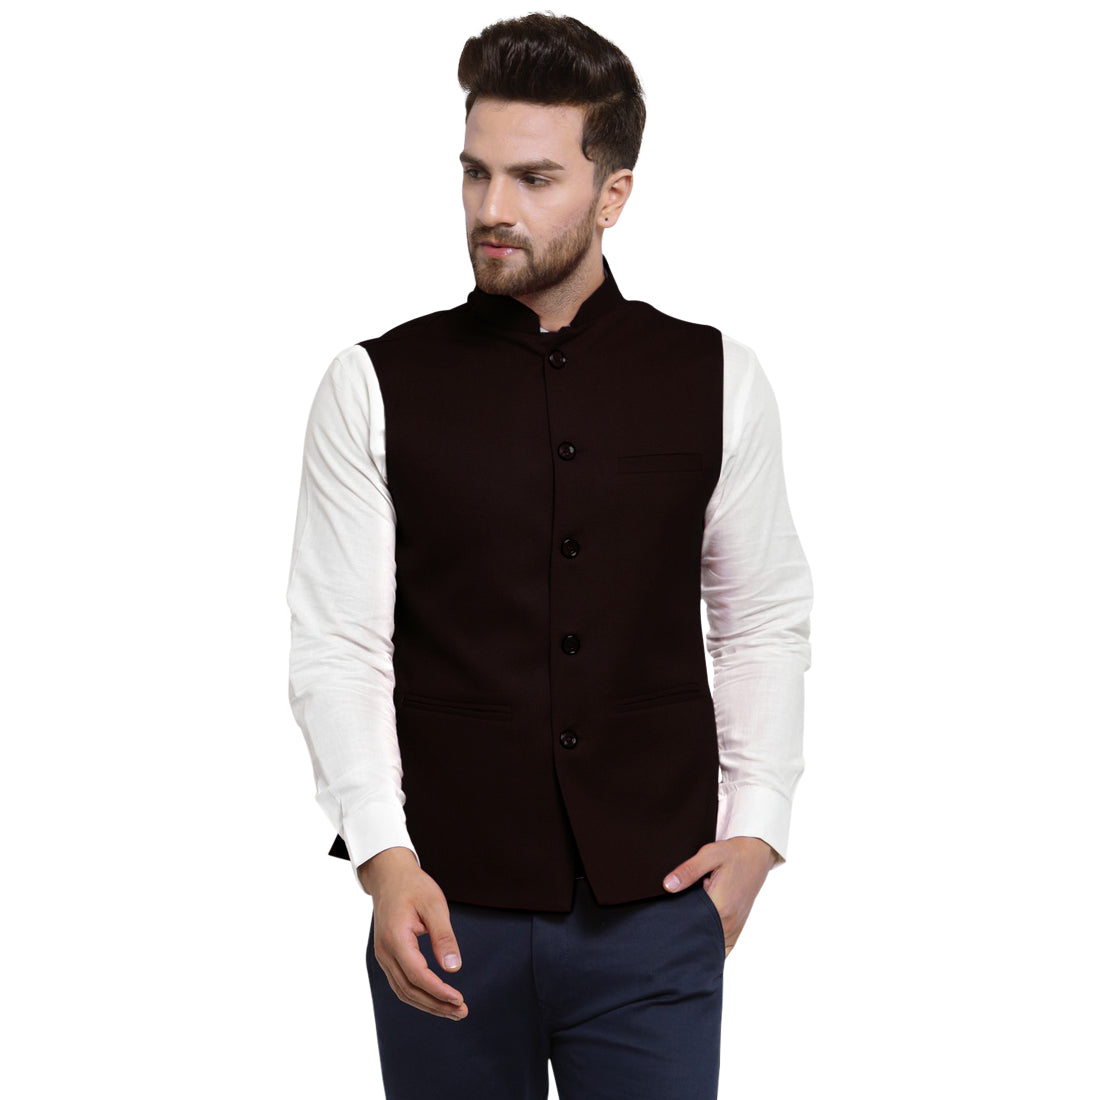 Treemoda Dark Brown Nehru jacket For Men Stylish Latest Design Suitable for Ethnic Wear/Wedding Wear/ Formal Wear/Casual Wear